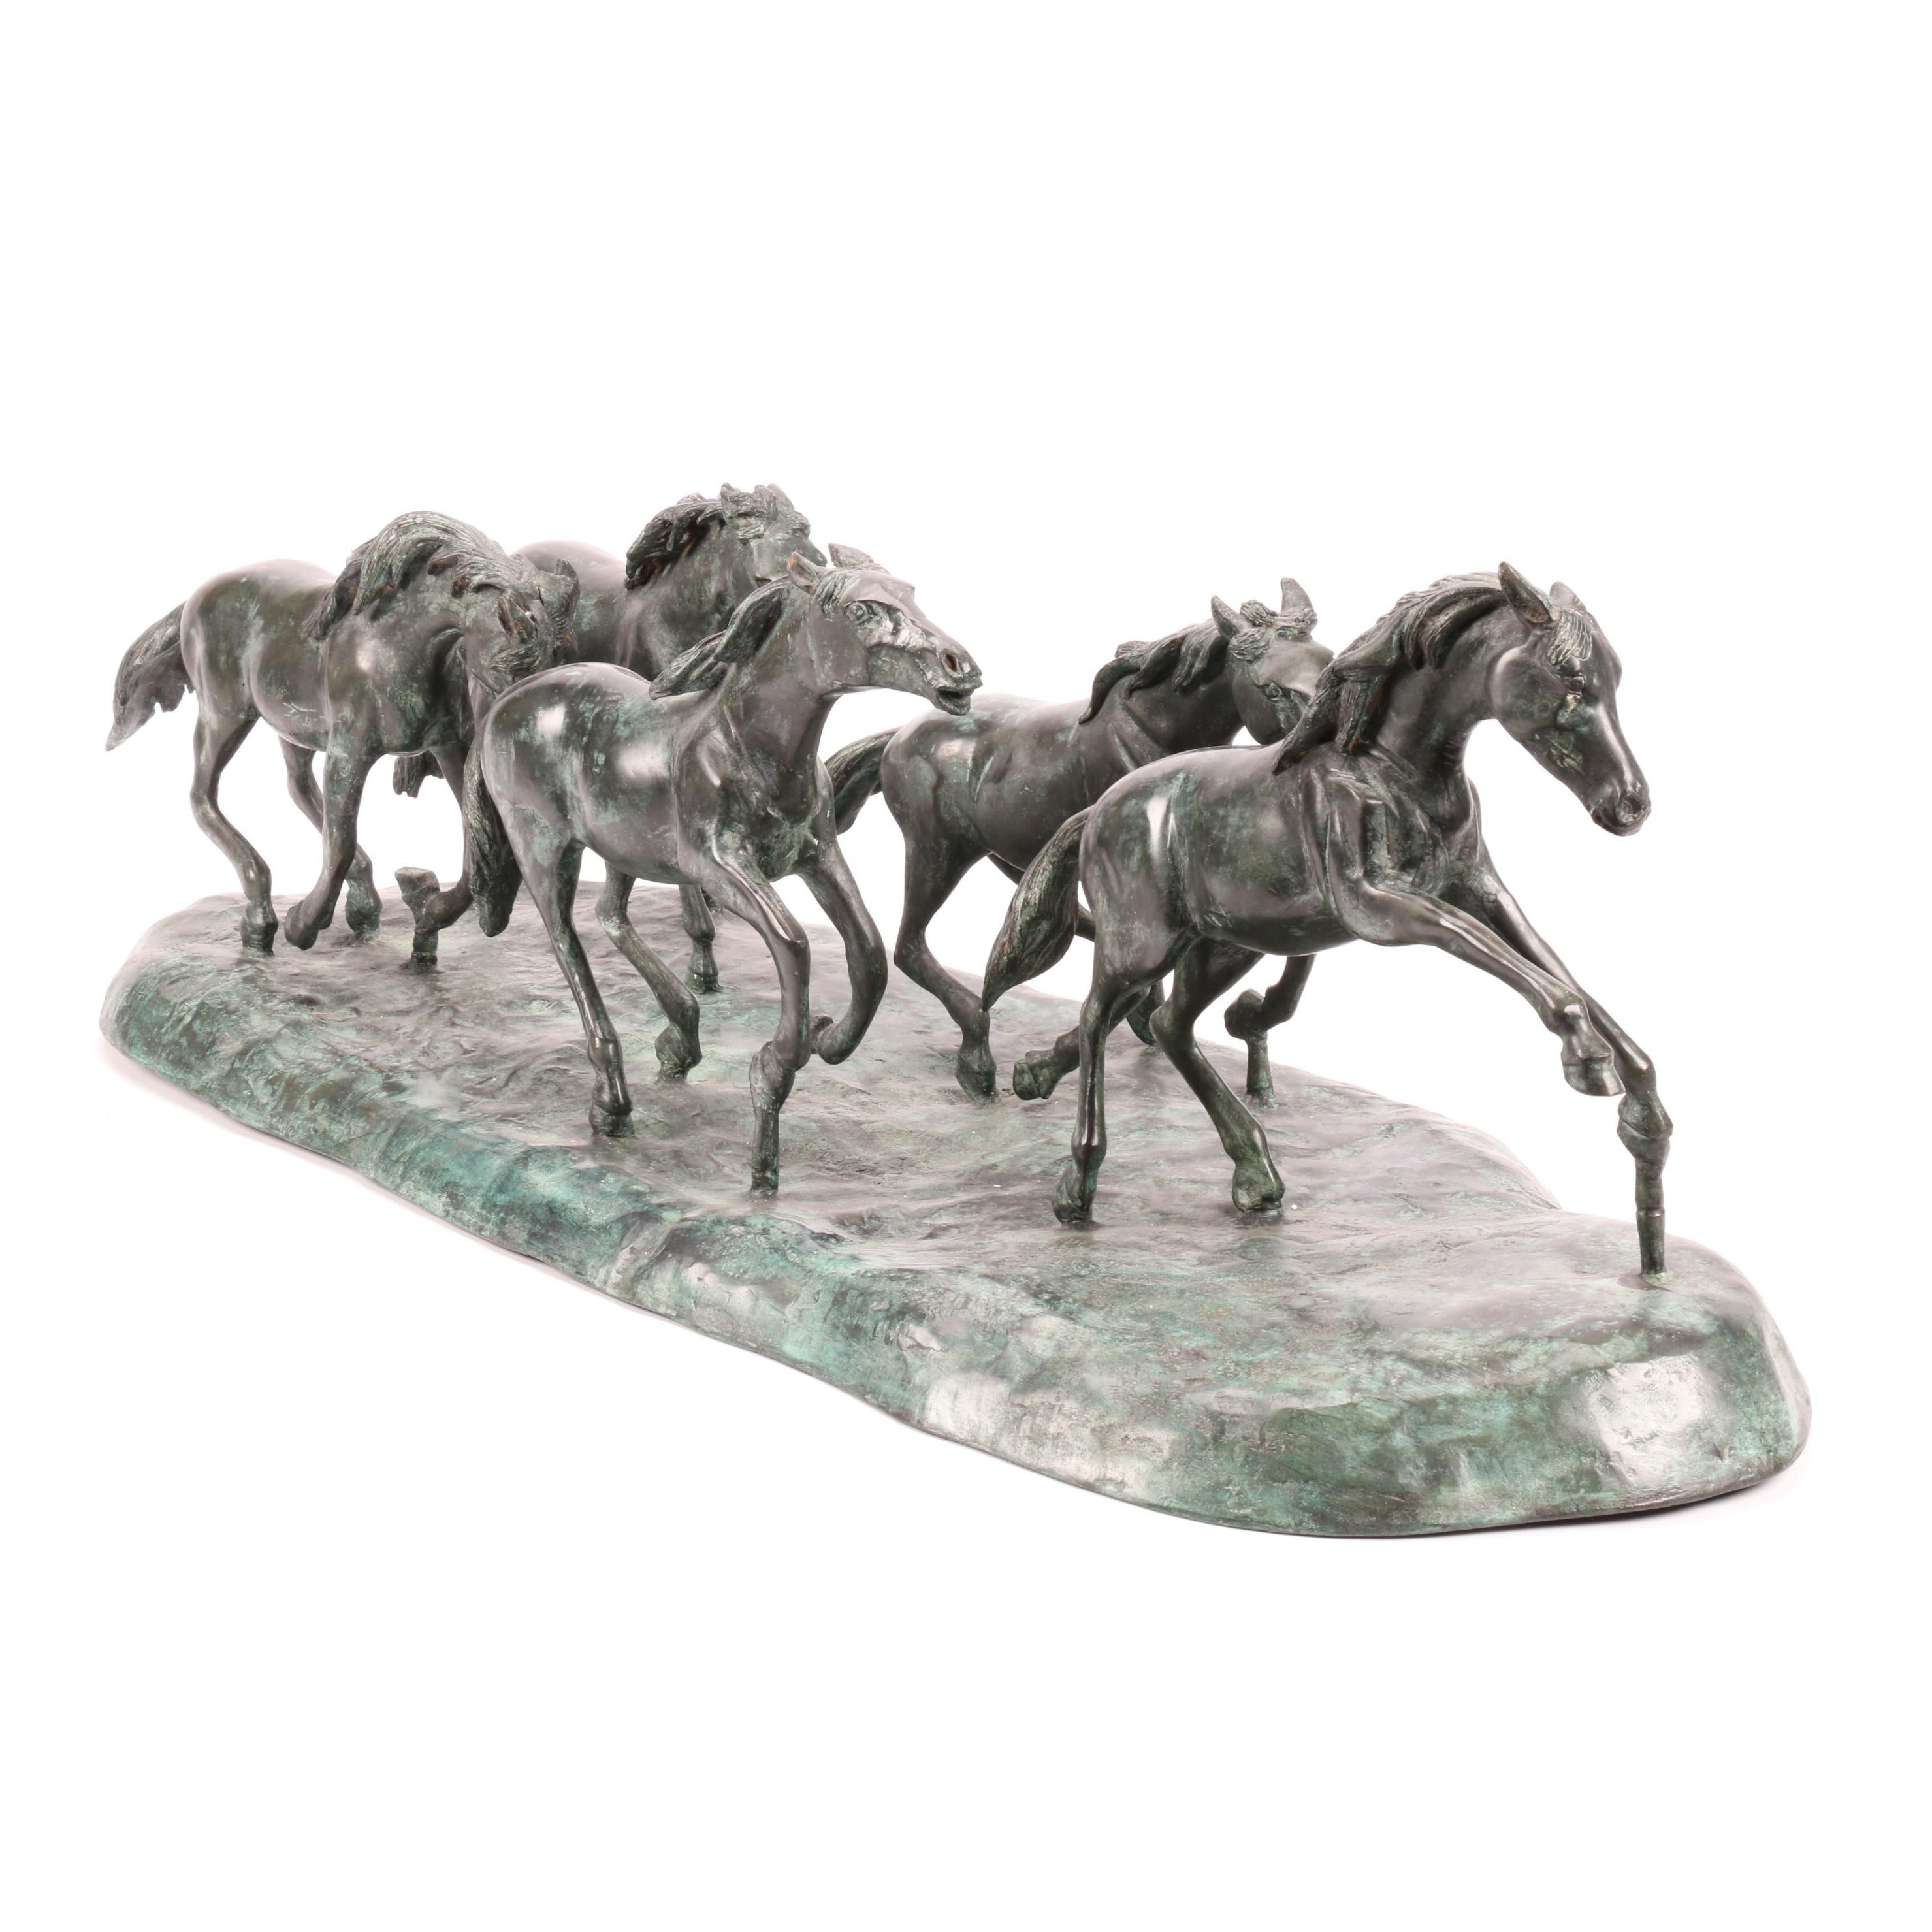 Bronze Galloping Wild Horses Statue or Sculpture